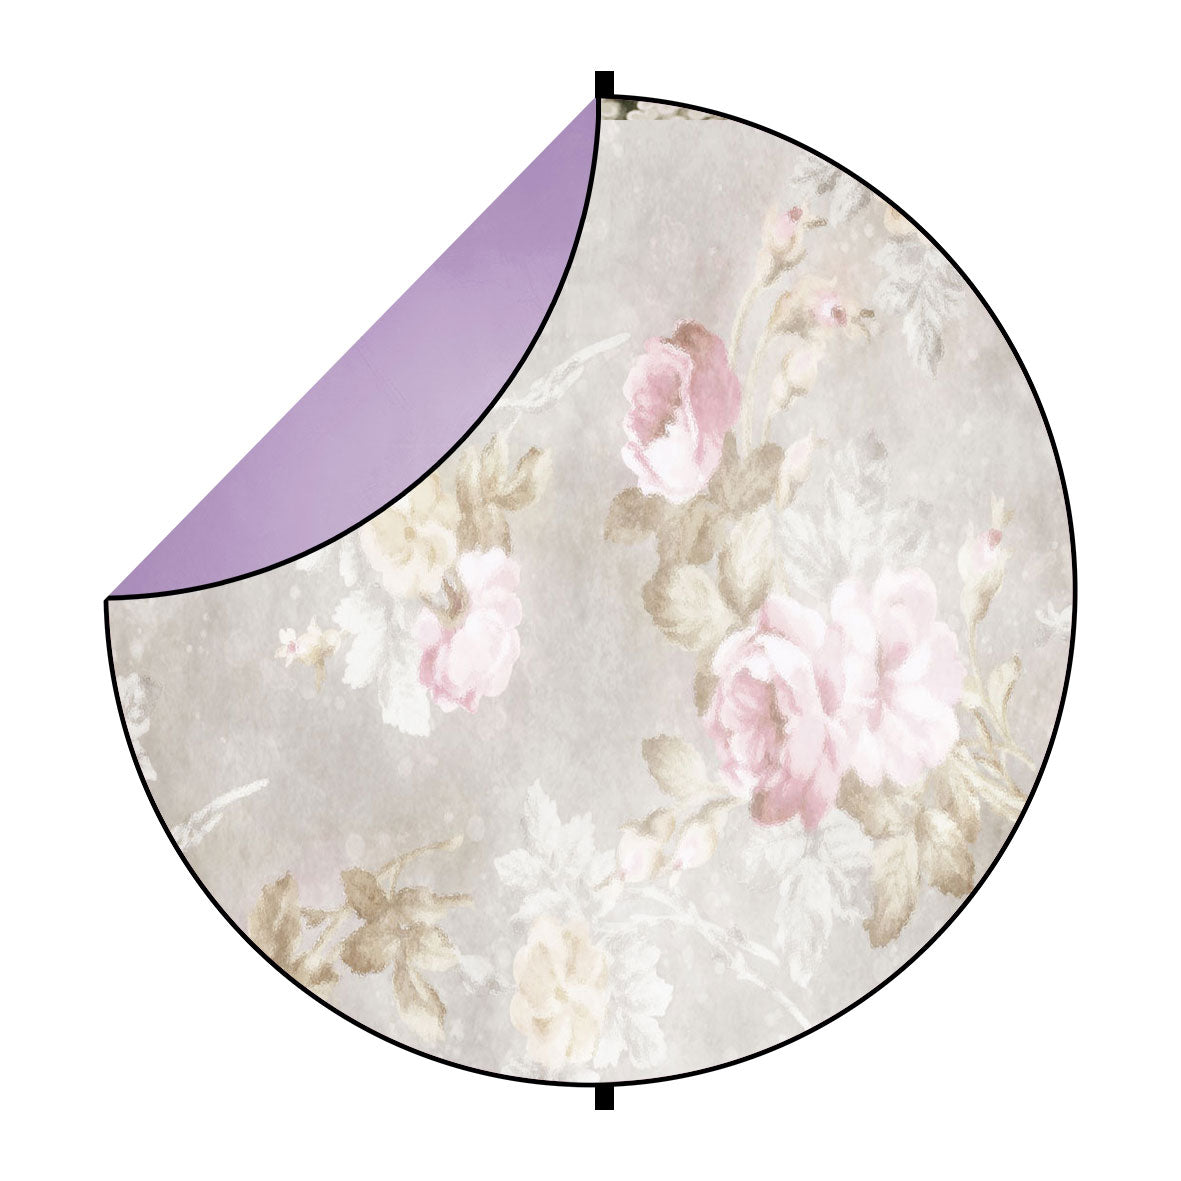 Fox Abstract Lilac/ Vintage Flowers Collapsible Photography Backdrop 5x5ft(1.5x1.5m)